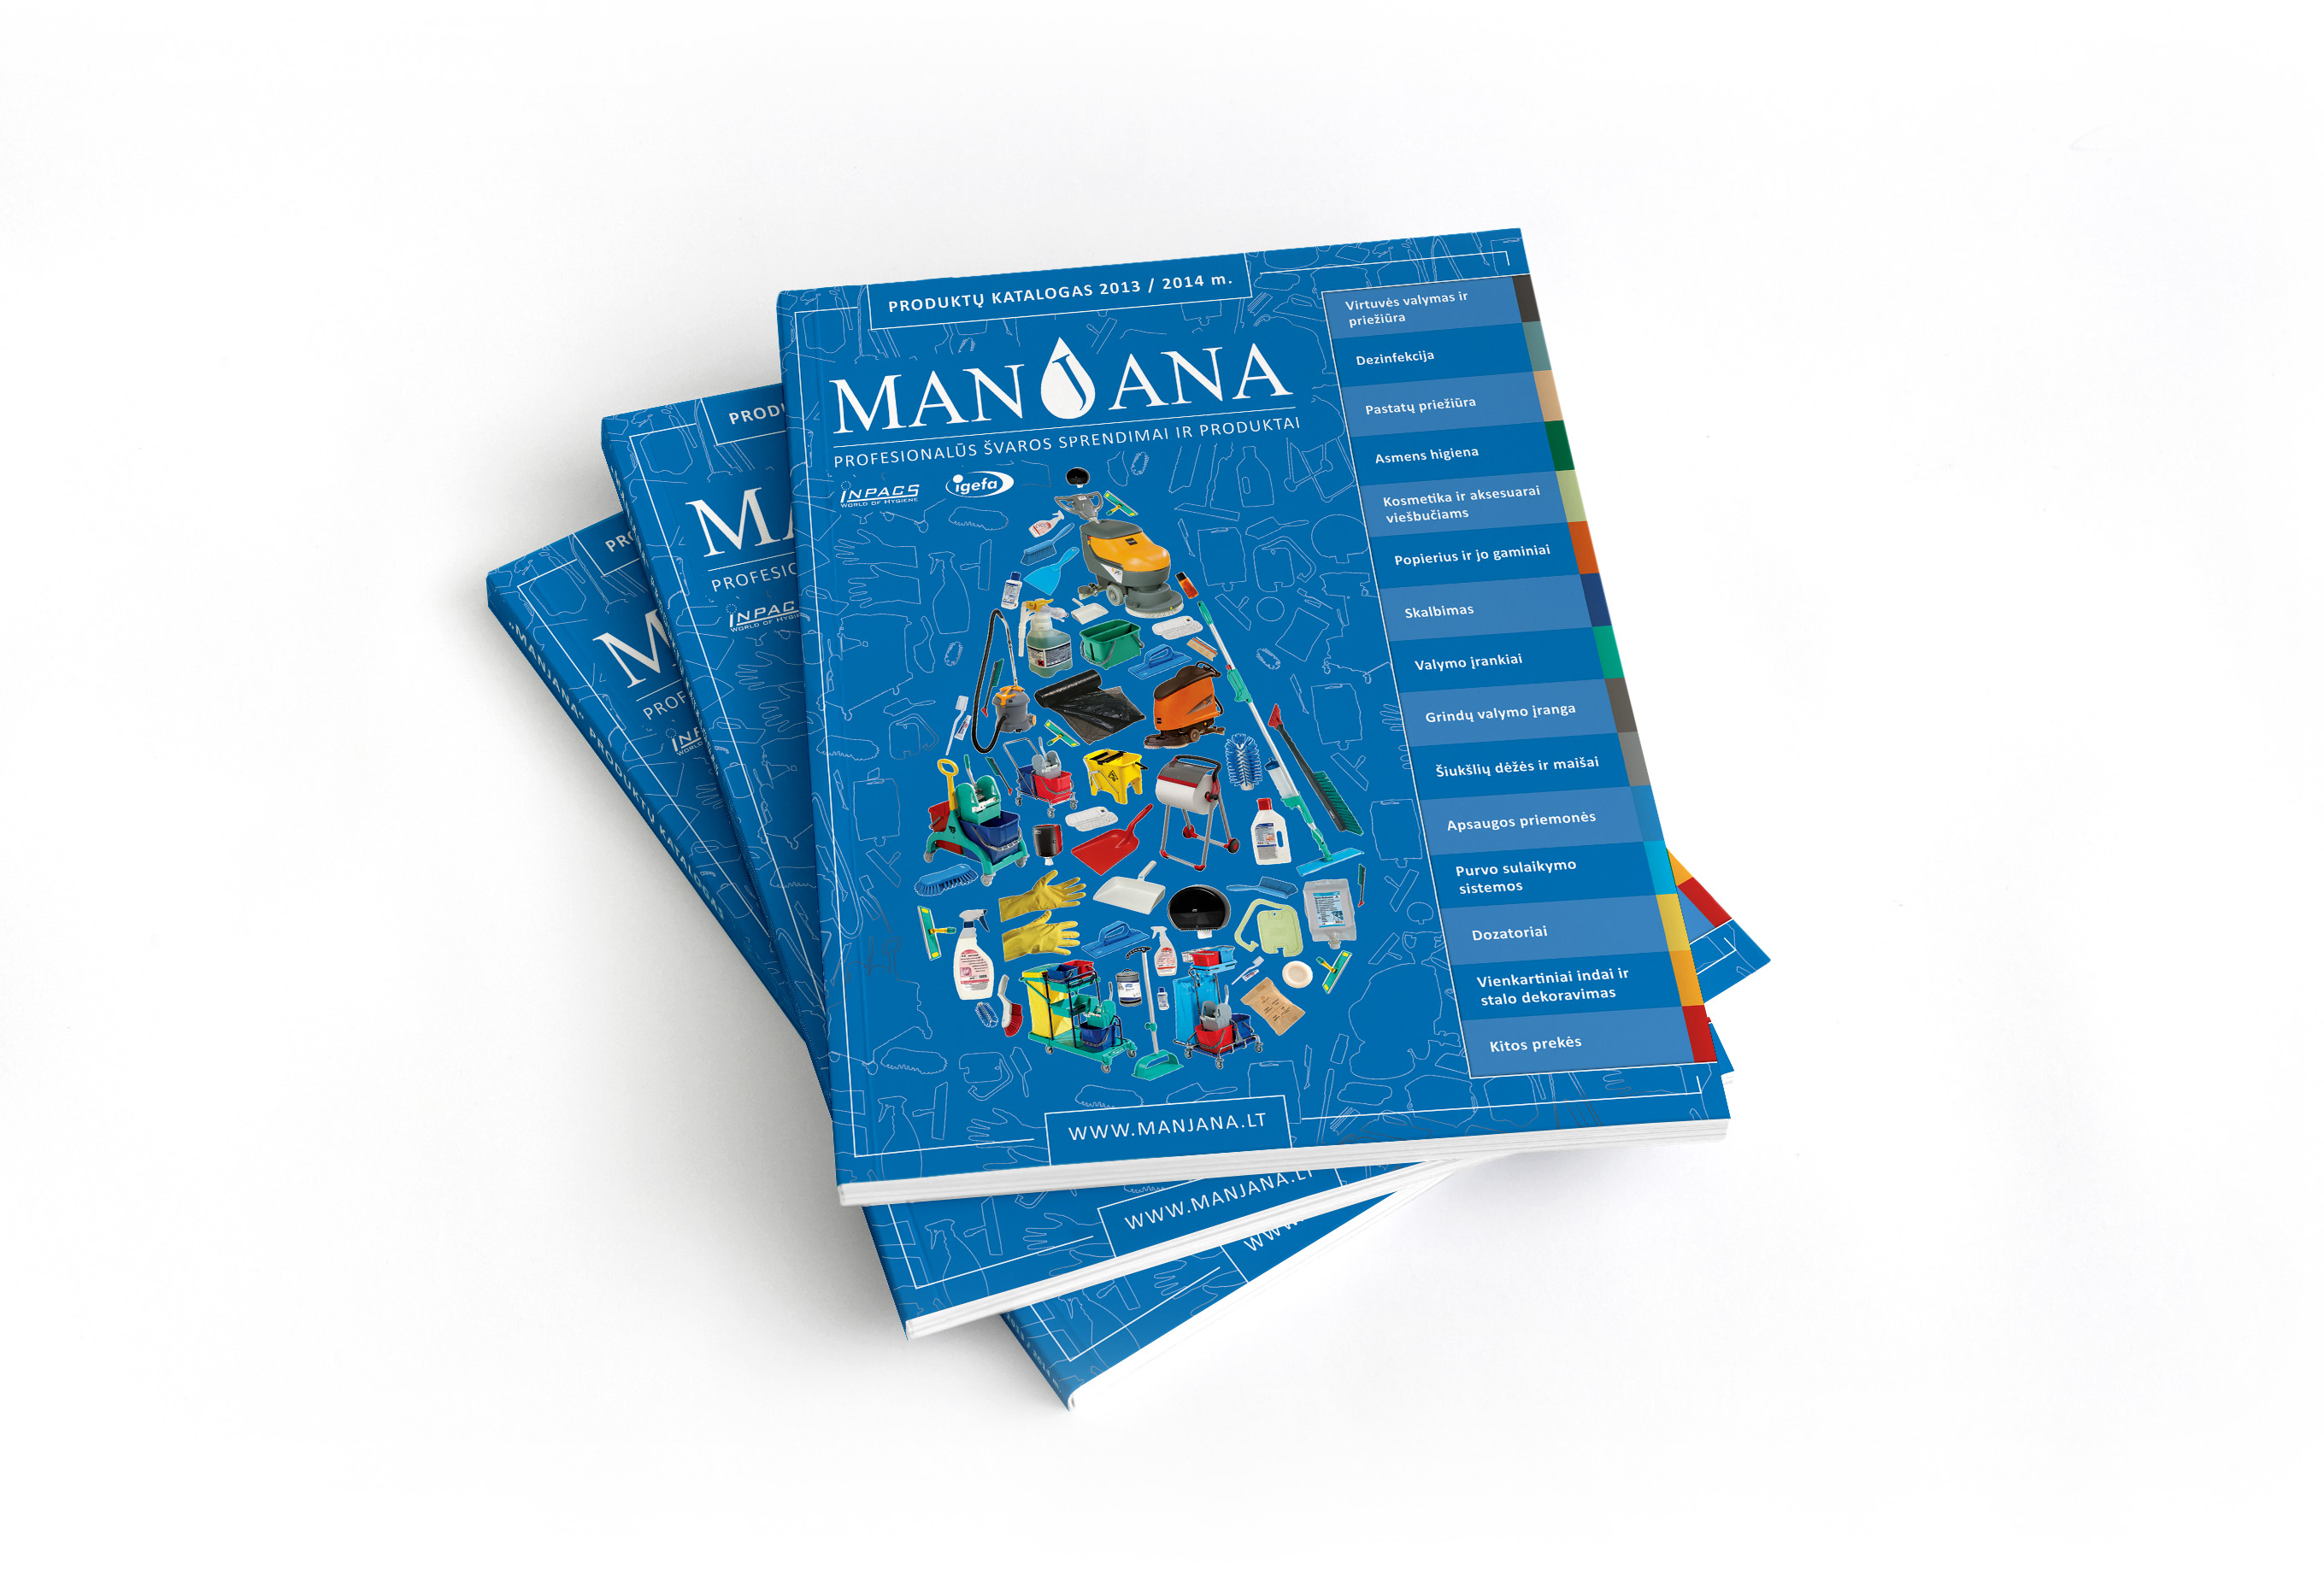 MANJANA Catalog 2013-2014 design